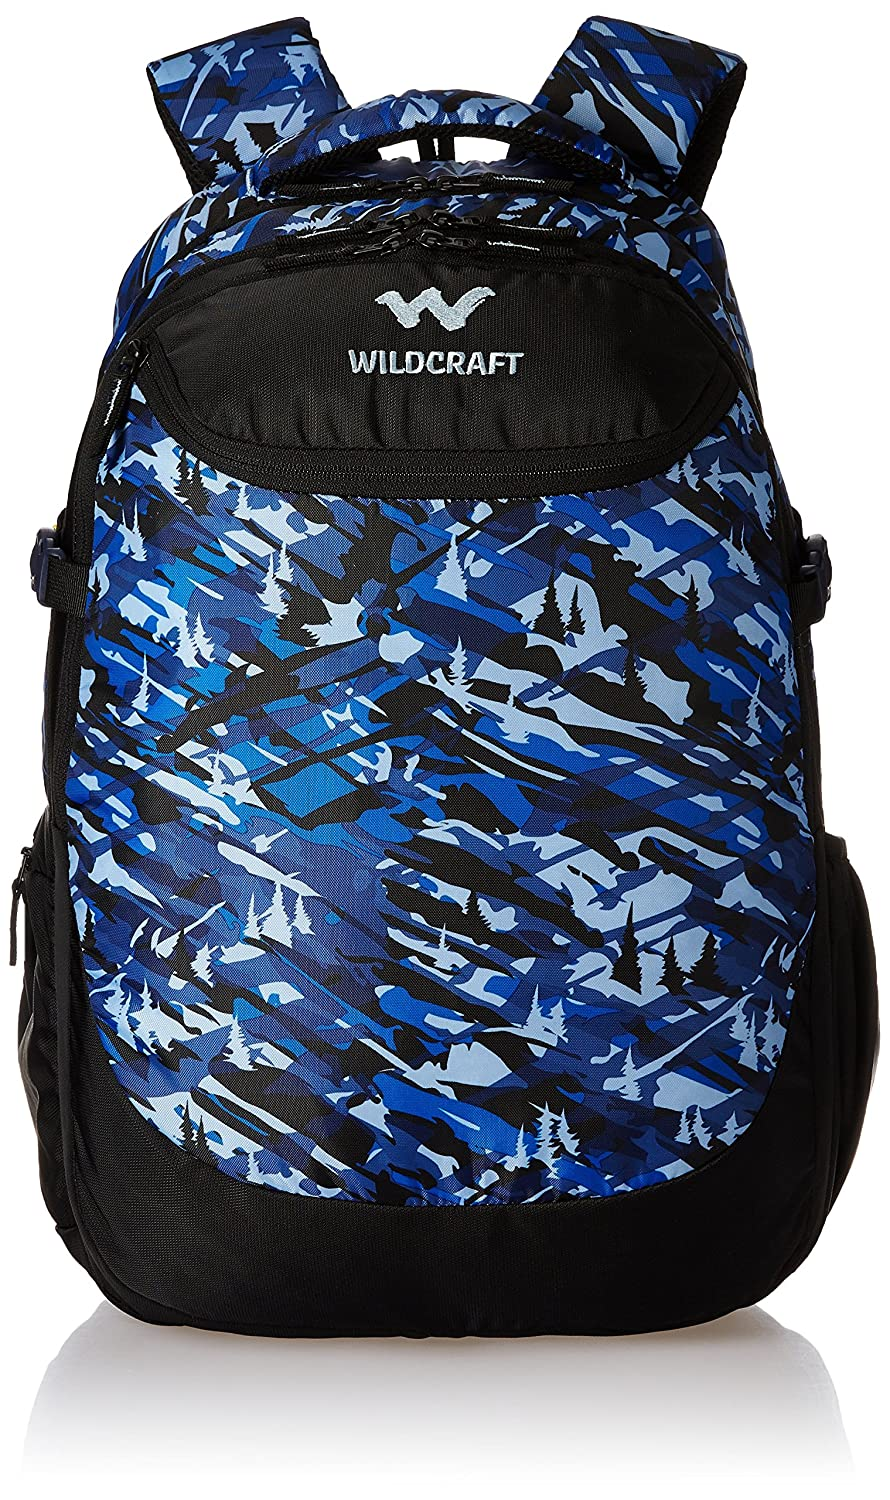 8ee7eae823 Wildcraft 35 Liters Multi-Colour Casual Backpack (Camo 5 Blue)  Amazon.in   Bags